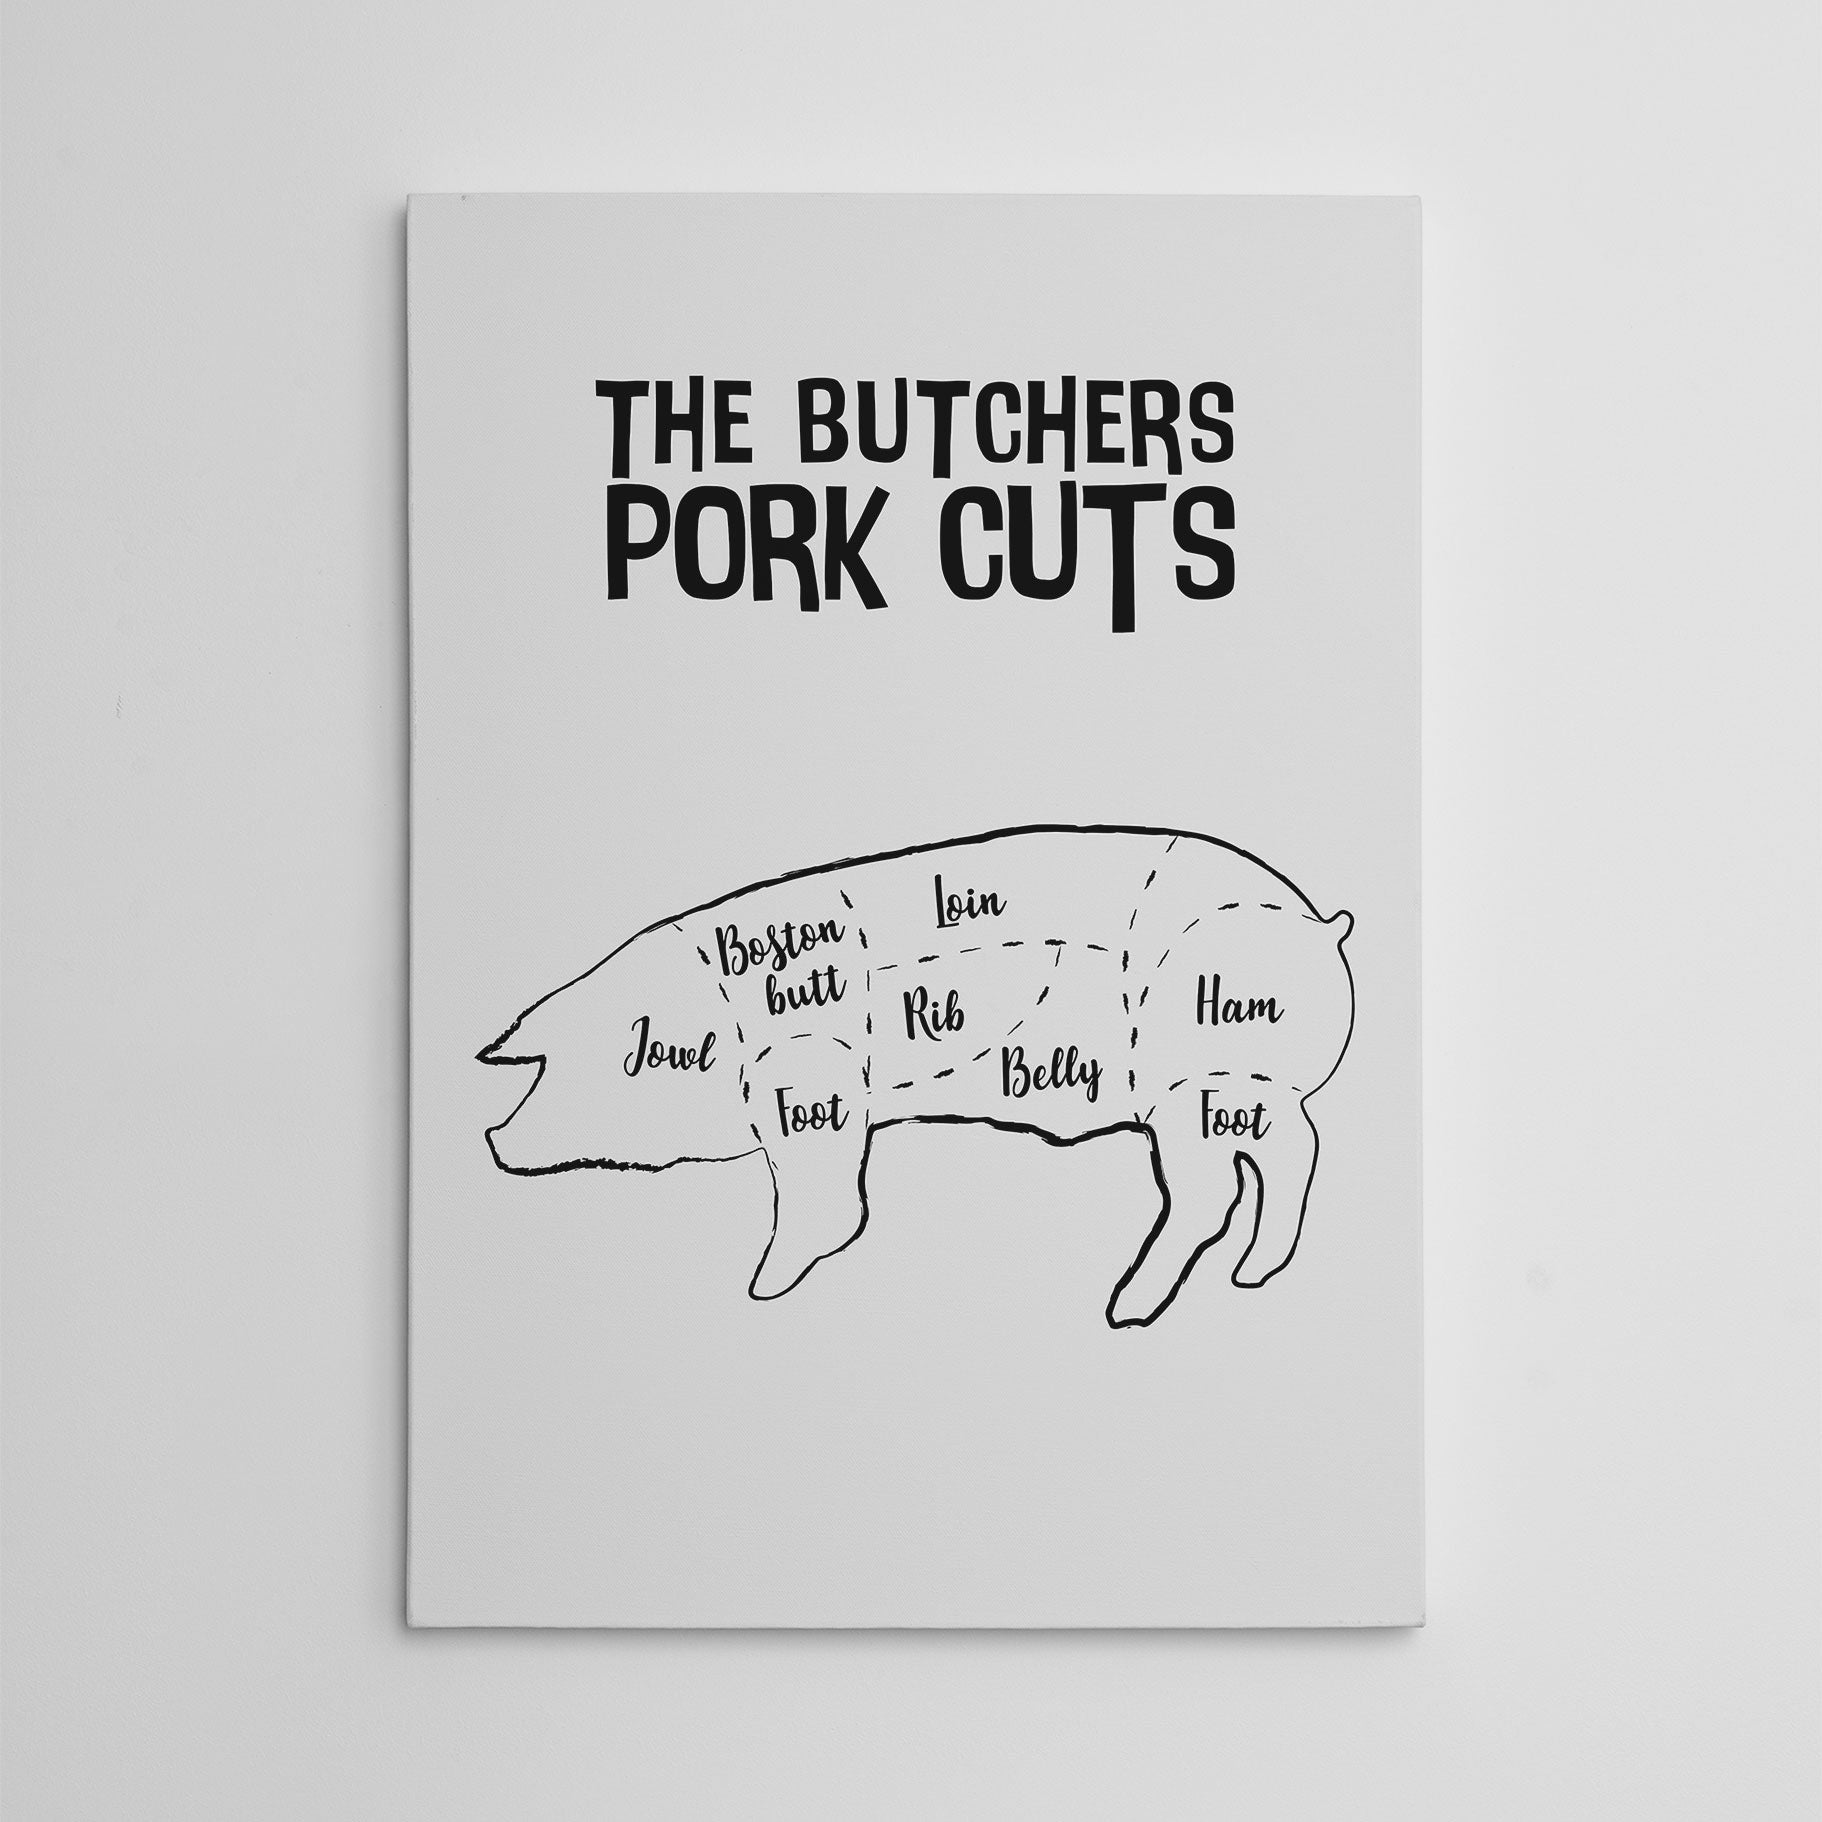 Kitchen canvas print with butcher's pork cuts text and image, on a grey background.